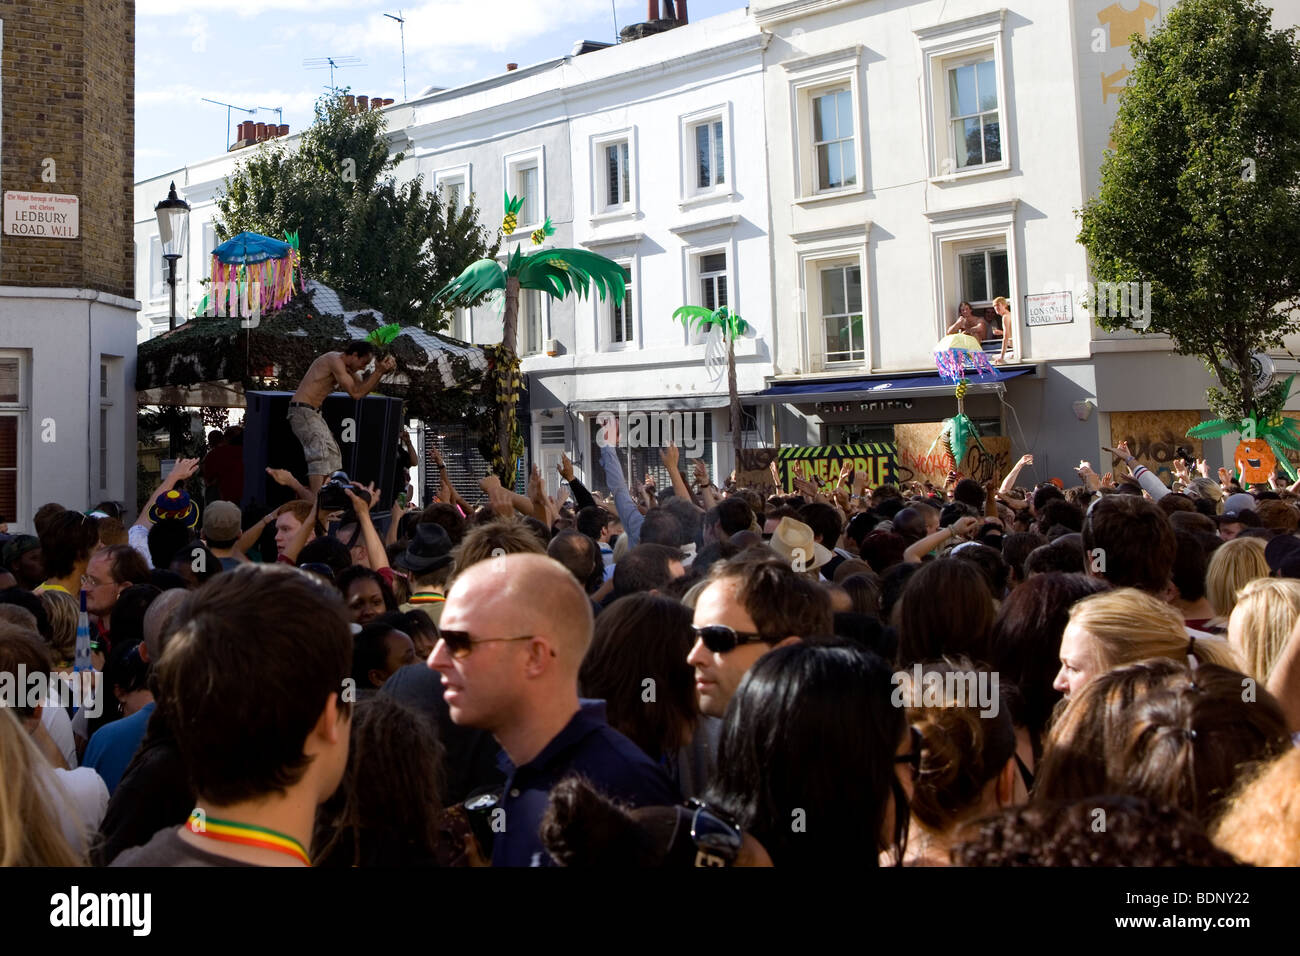 Crowd dancing at the Notting Hill carnival Pineapple tribe sound